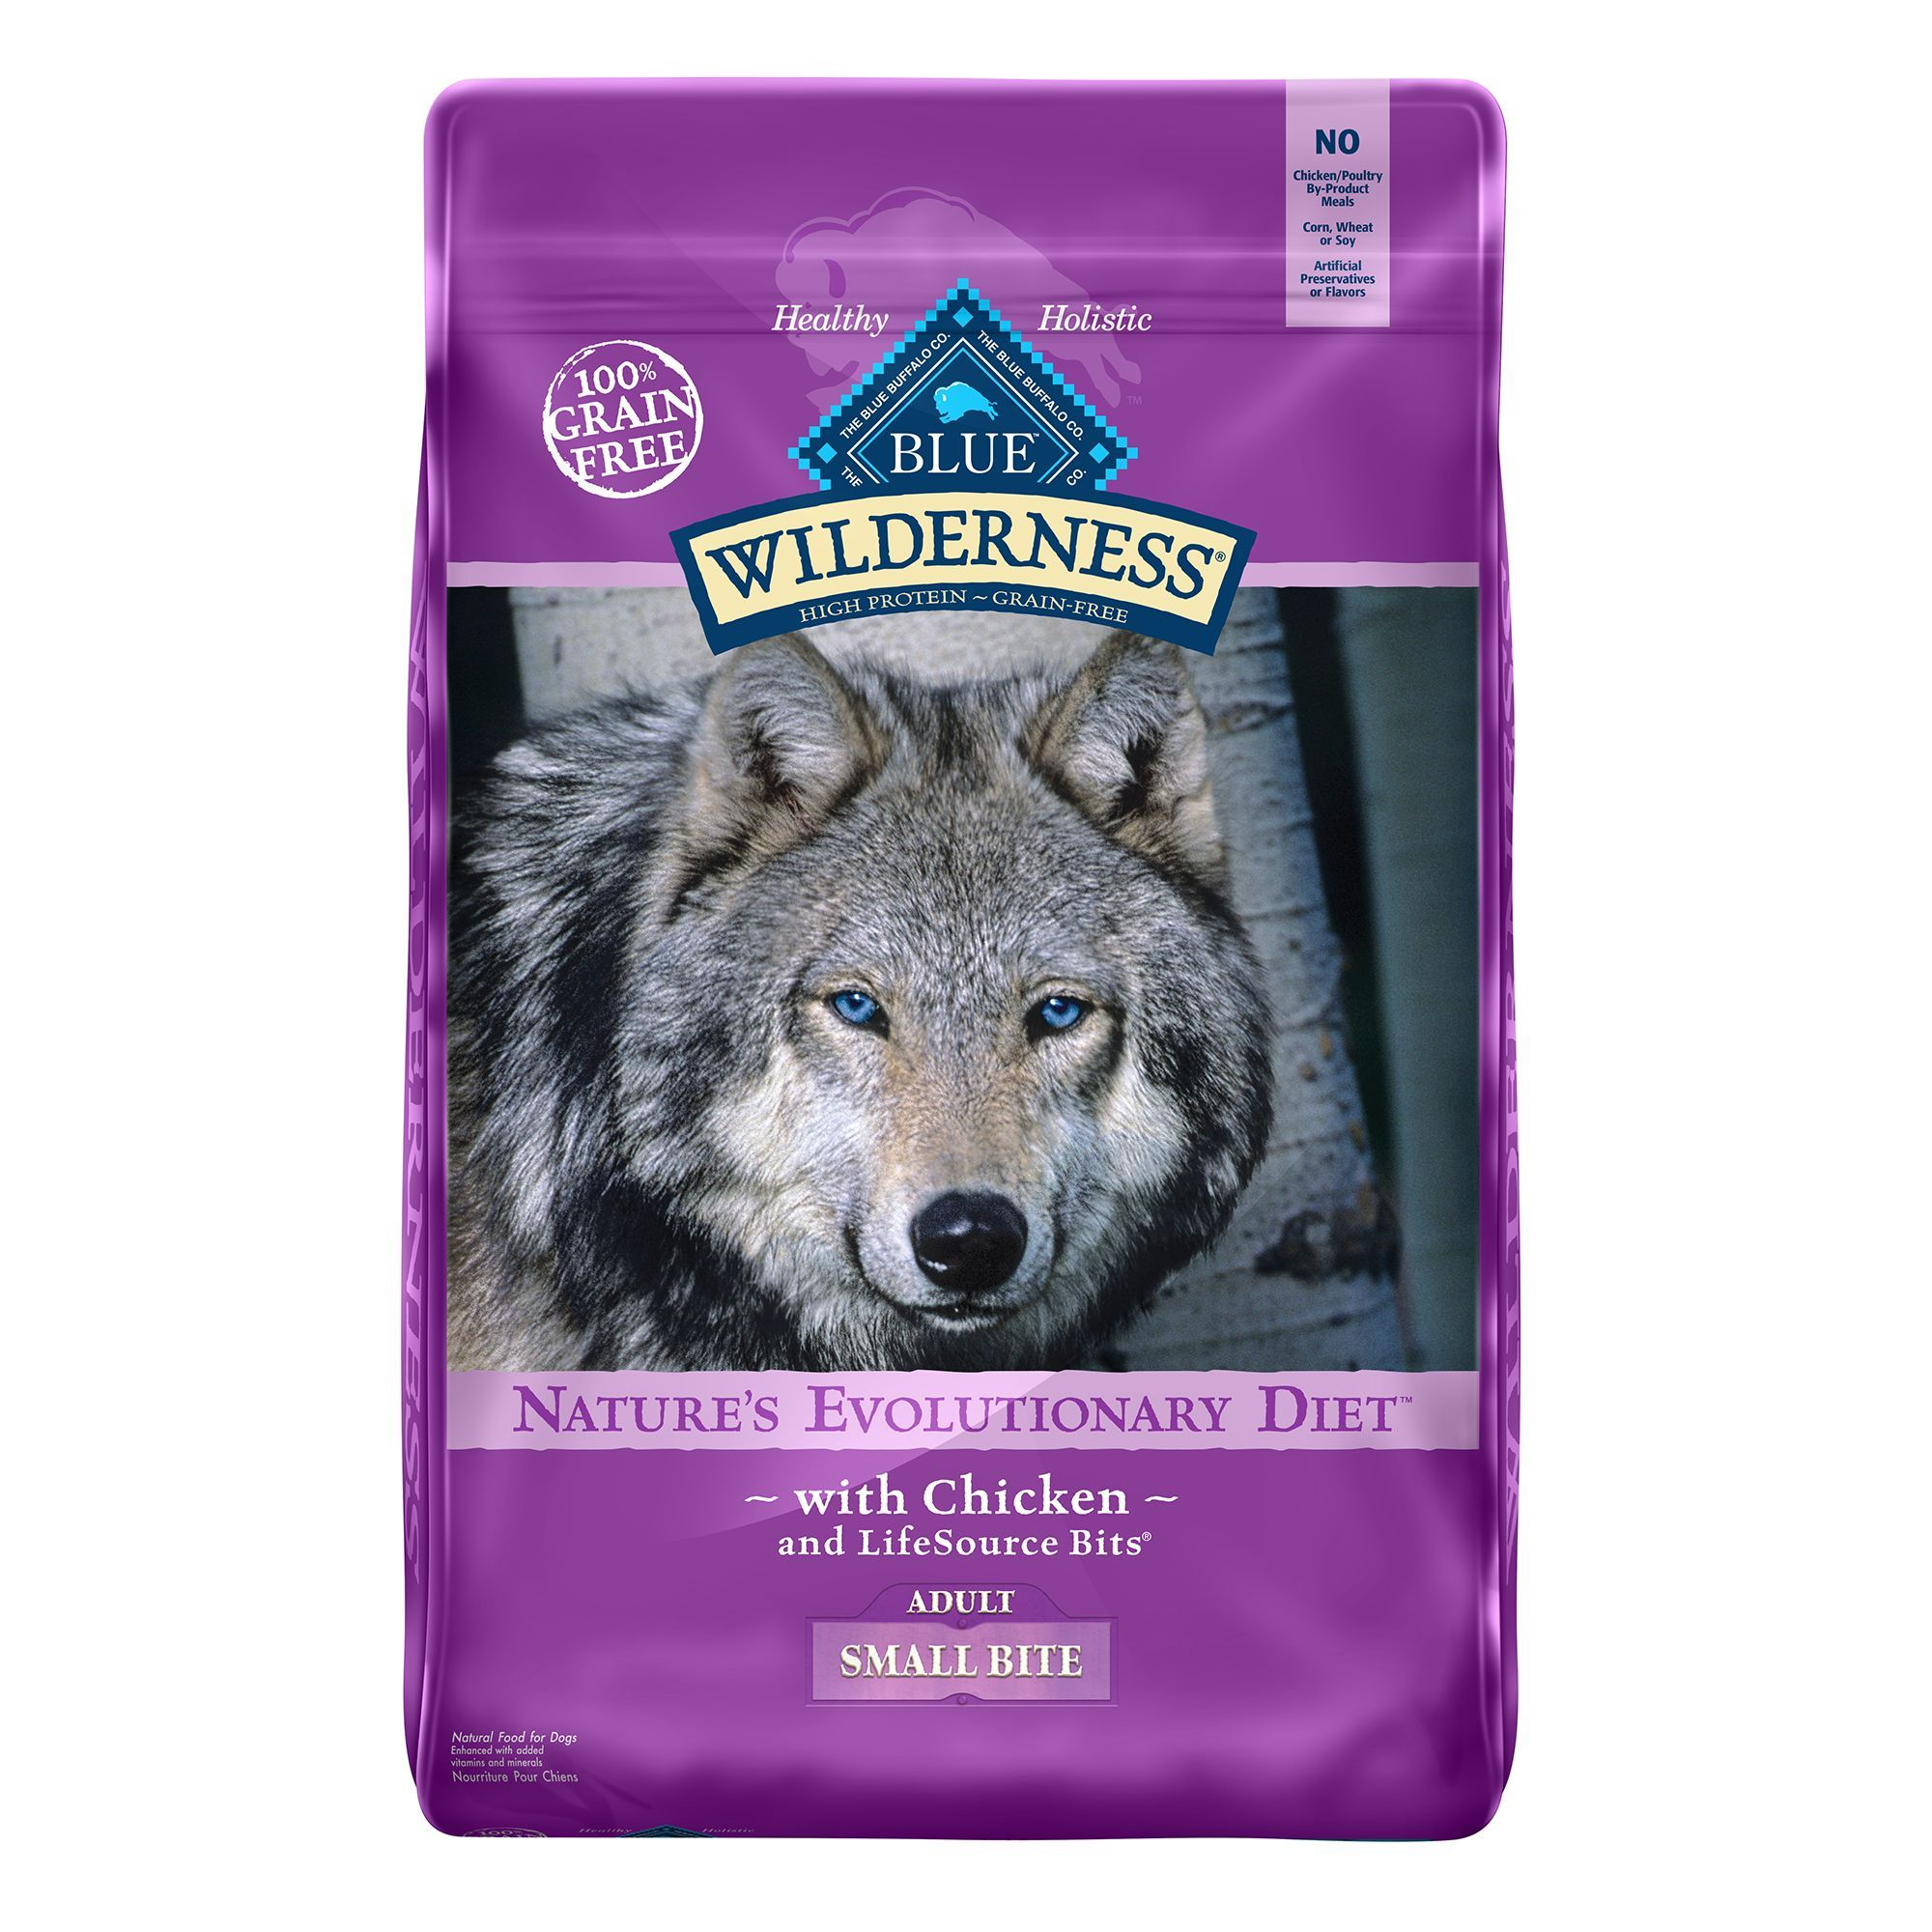 Blue Buffalo Wilderness Small Bites Adult Dog Food Grain Free